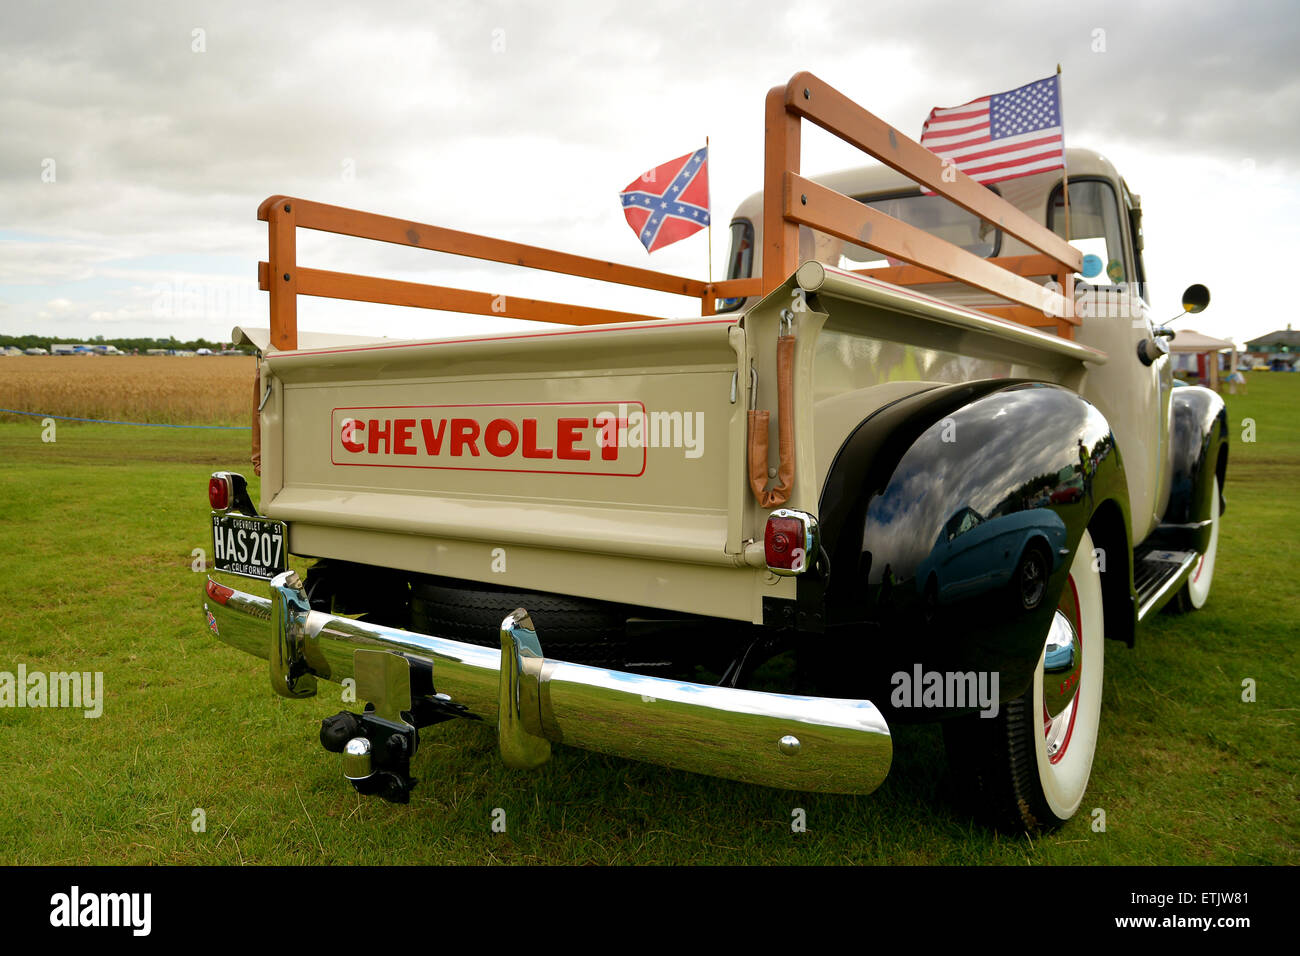 Classic pre-war American Chevrolet truck - Chevy Vintage American Pick Up Truck USA - Nostalgia Festival at the - Stock Image